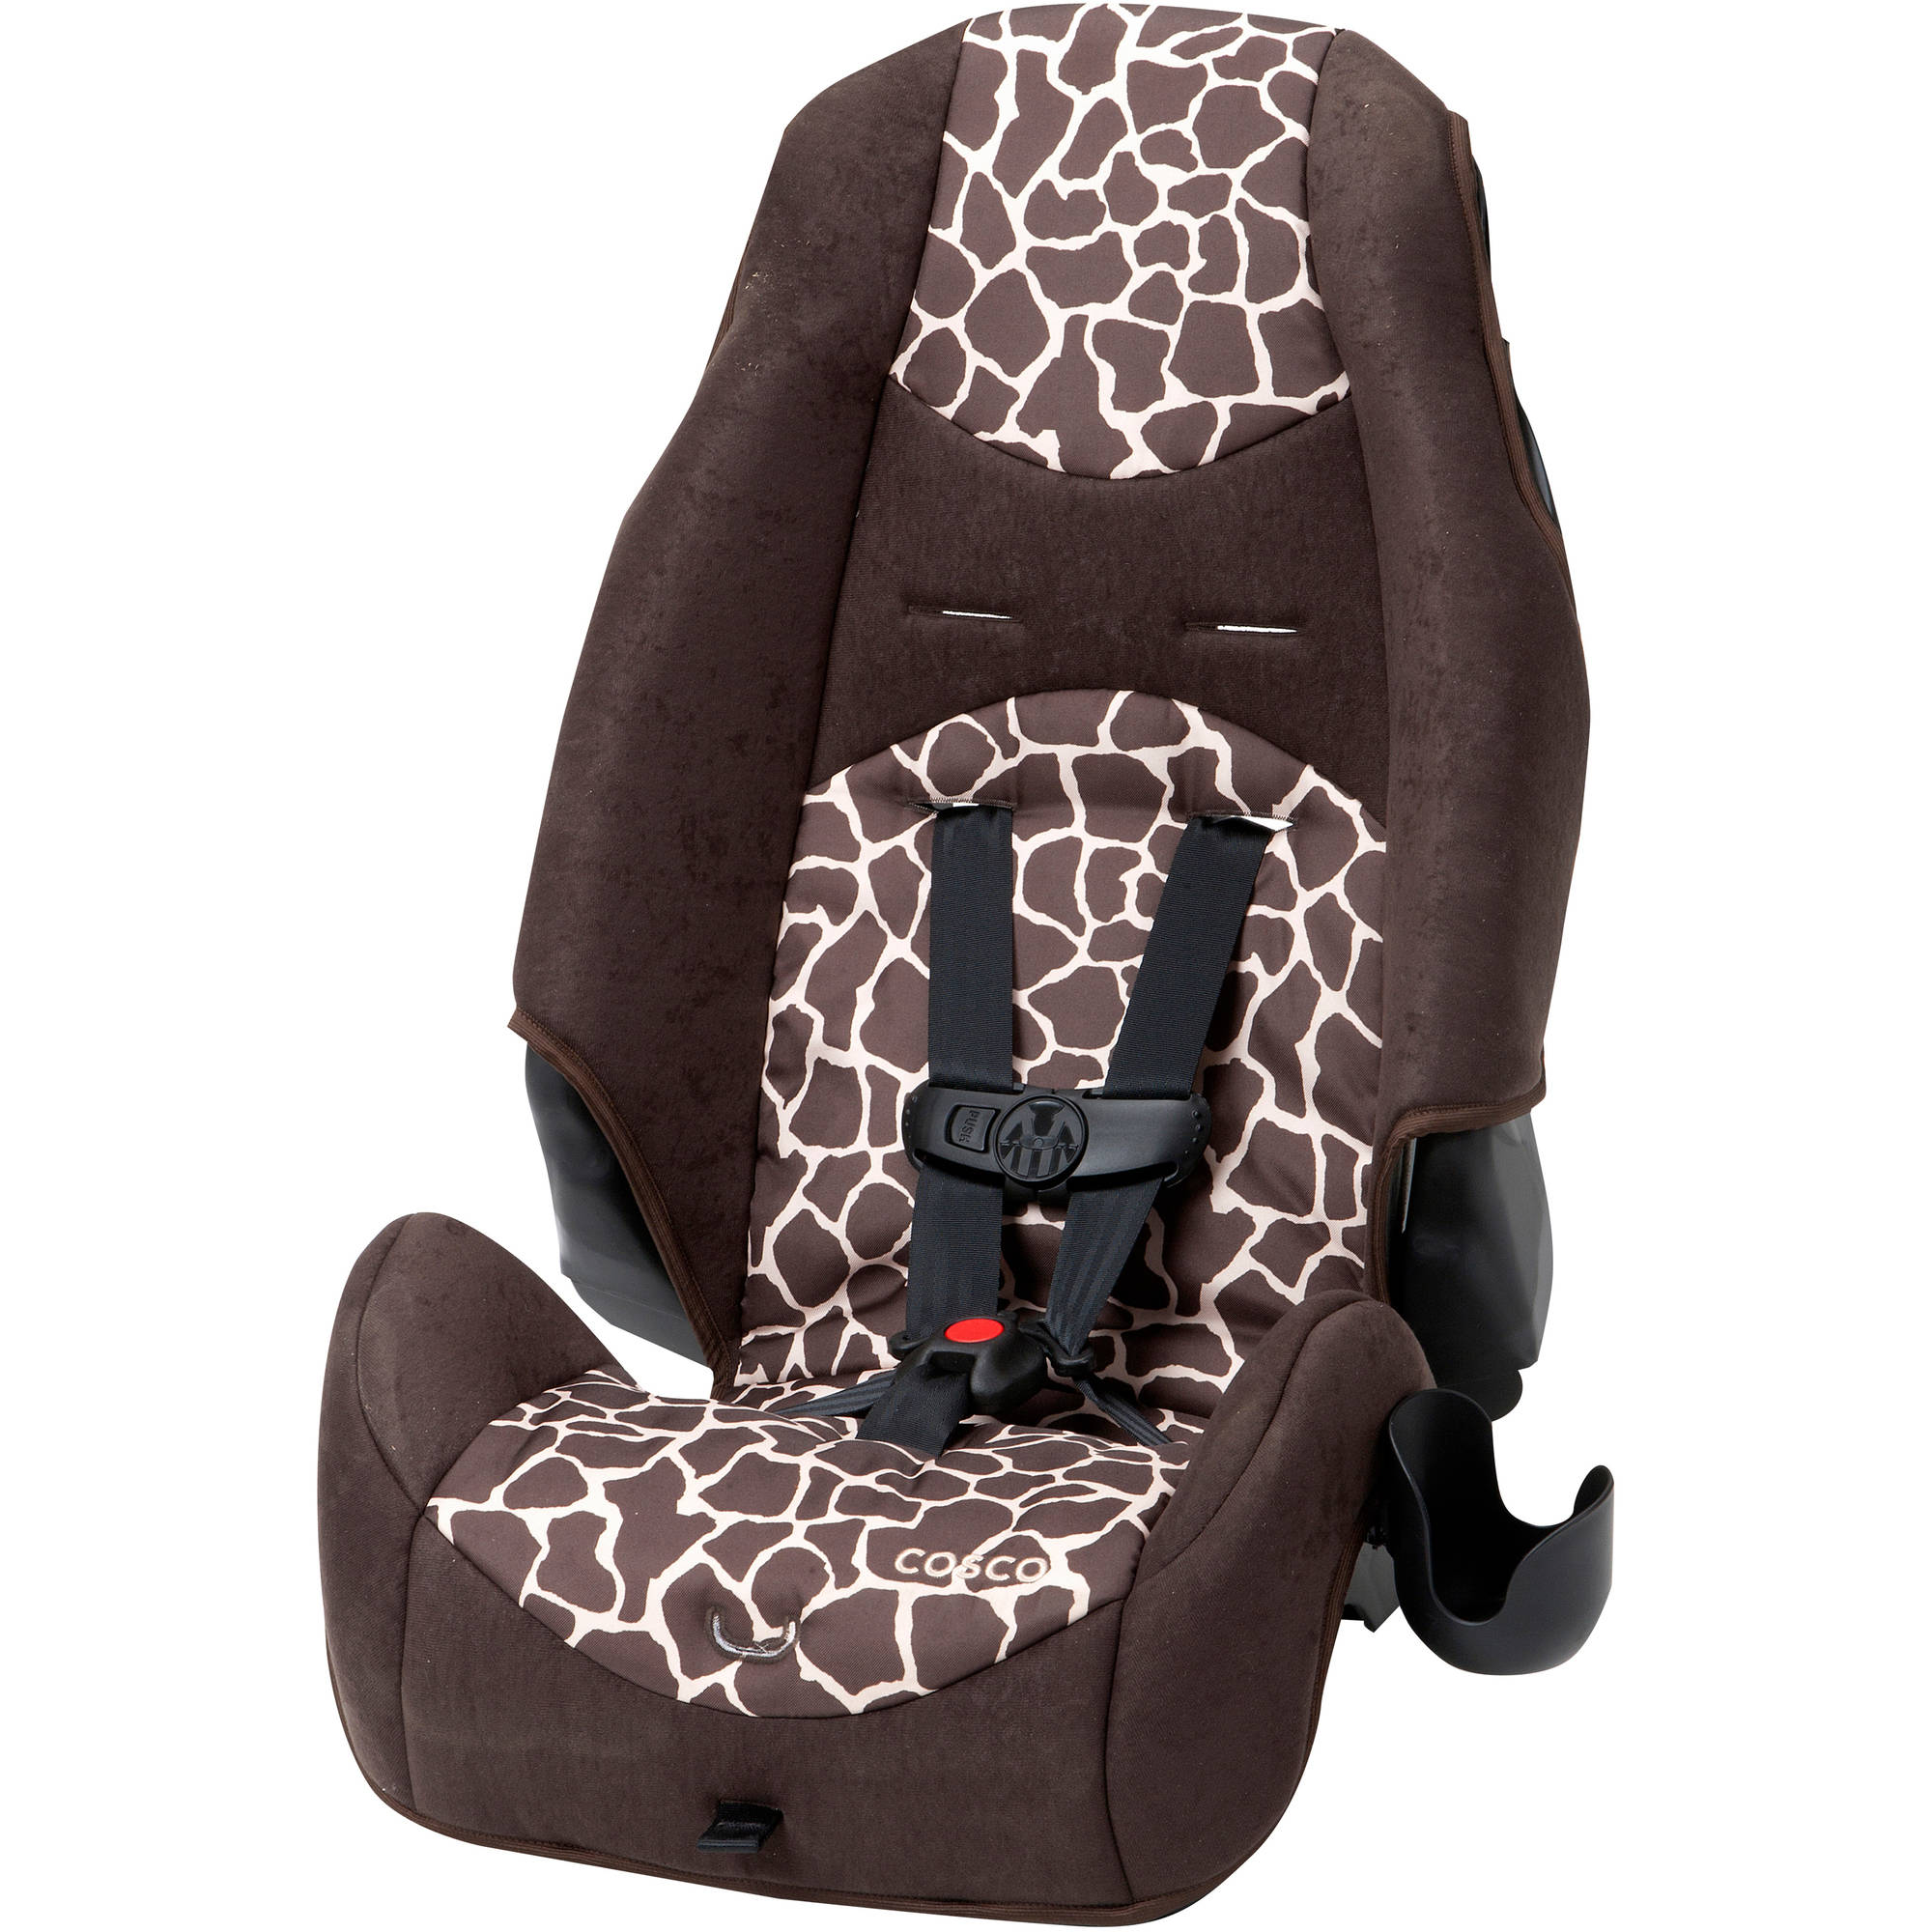 Cosco Highback 2-in-1 Harness Booster Car Seat, Quigley